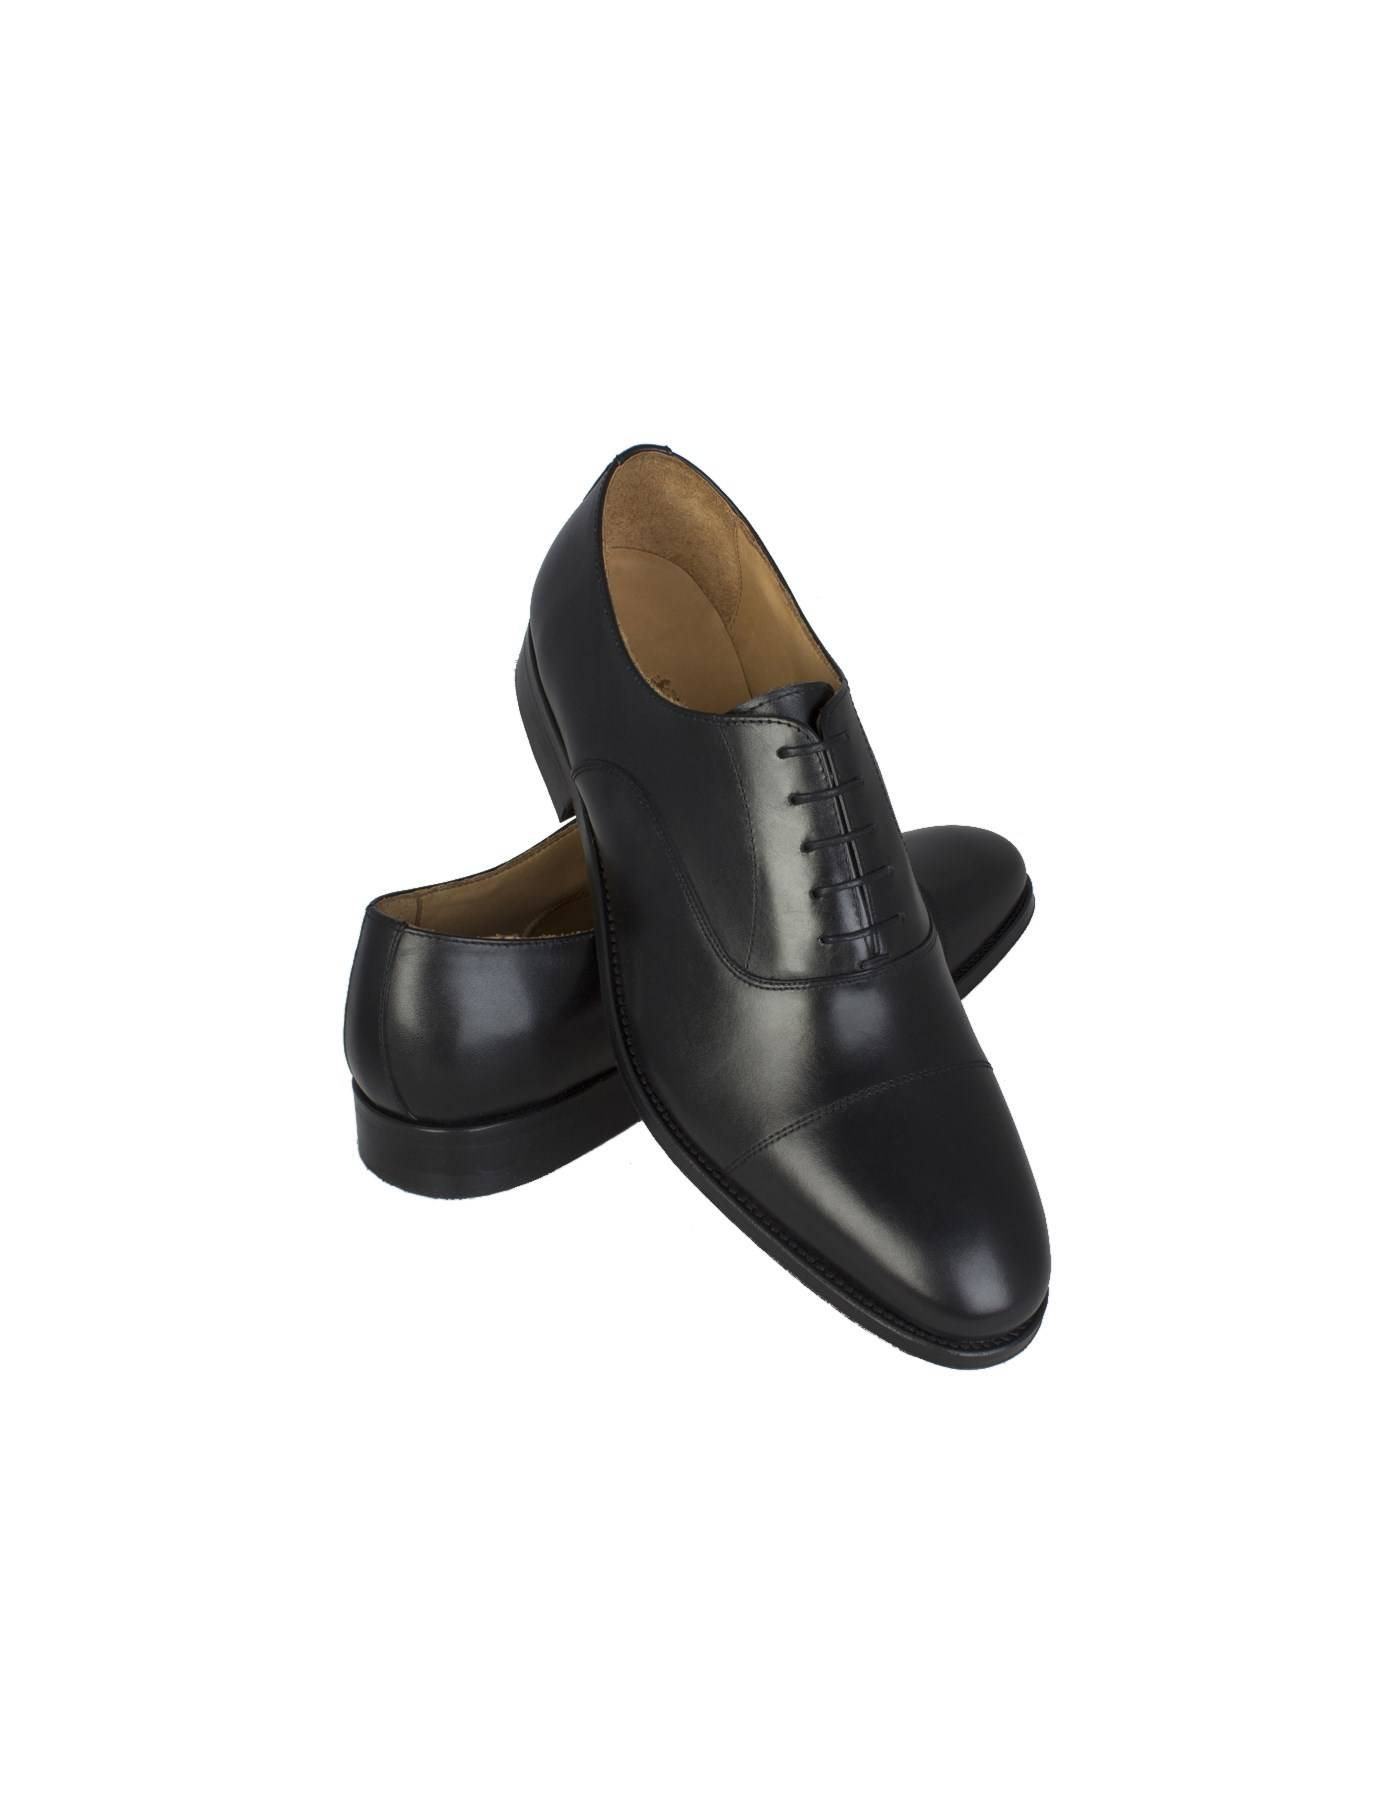 Hawes & Curtis Men's Leather Oxford Shoes in Black Size 10.5 Hawes & Curtis